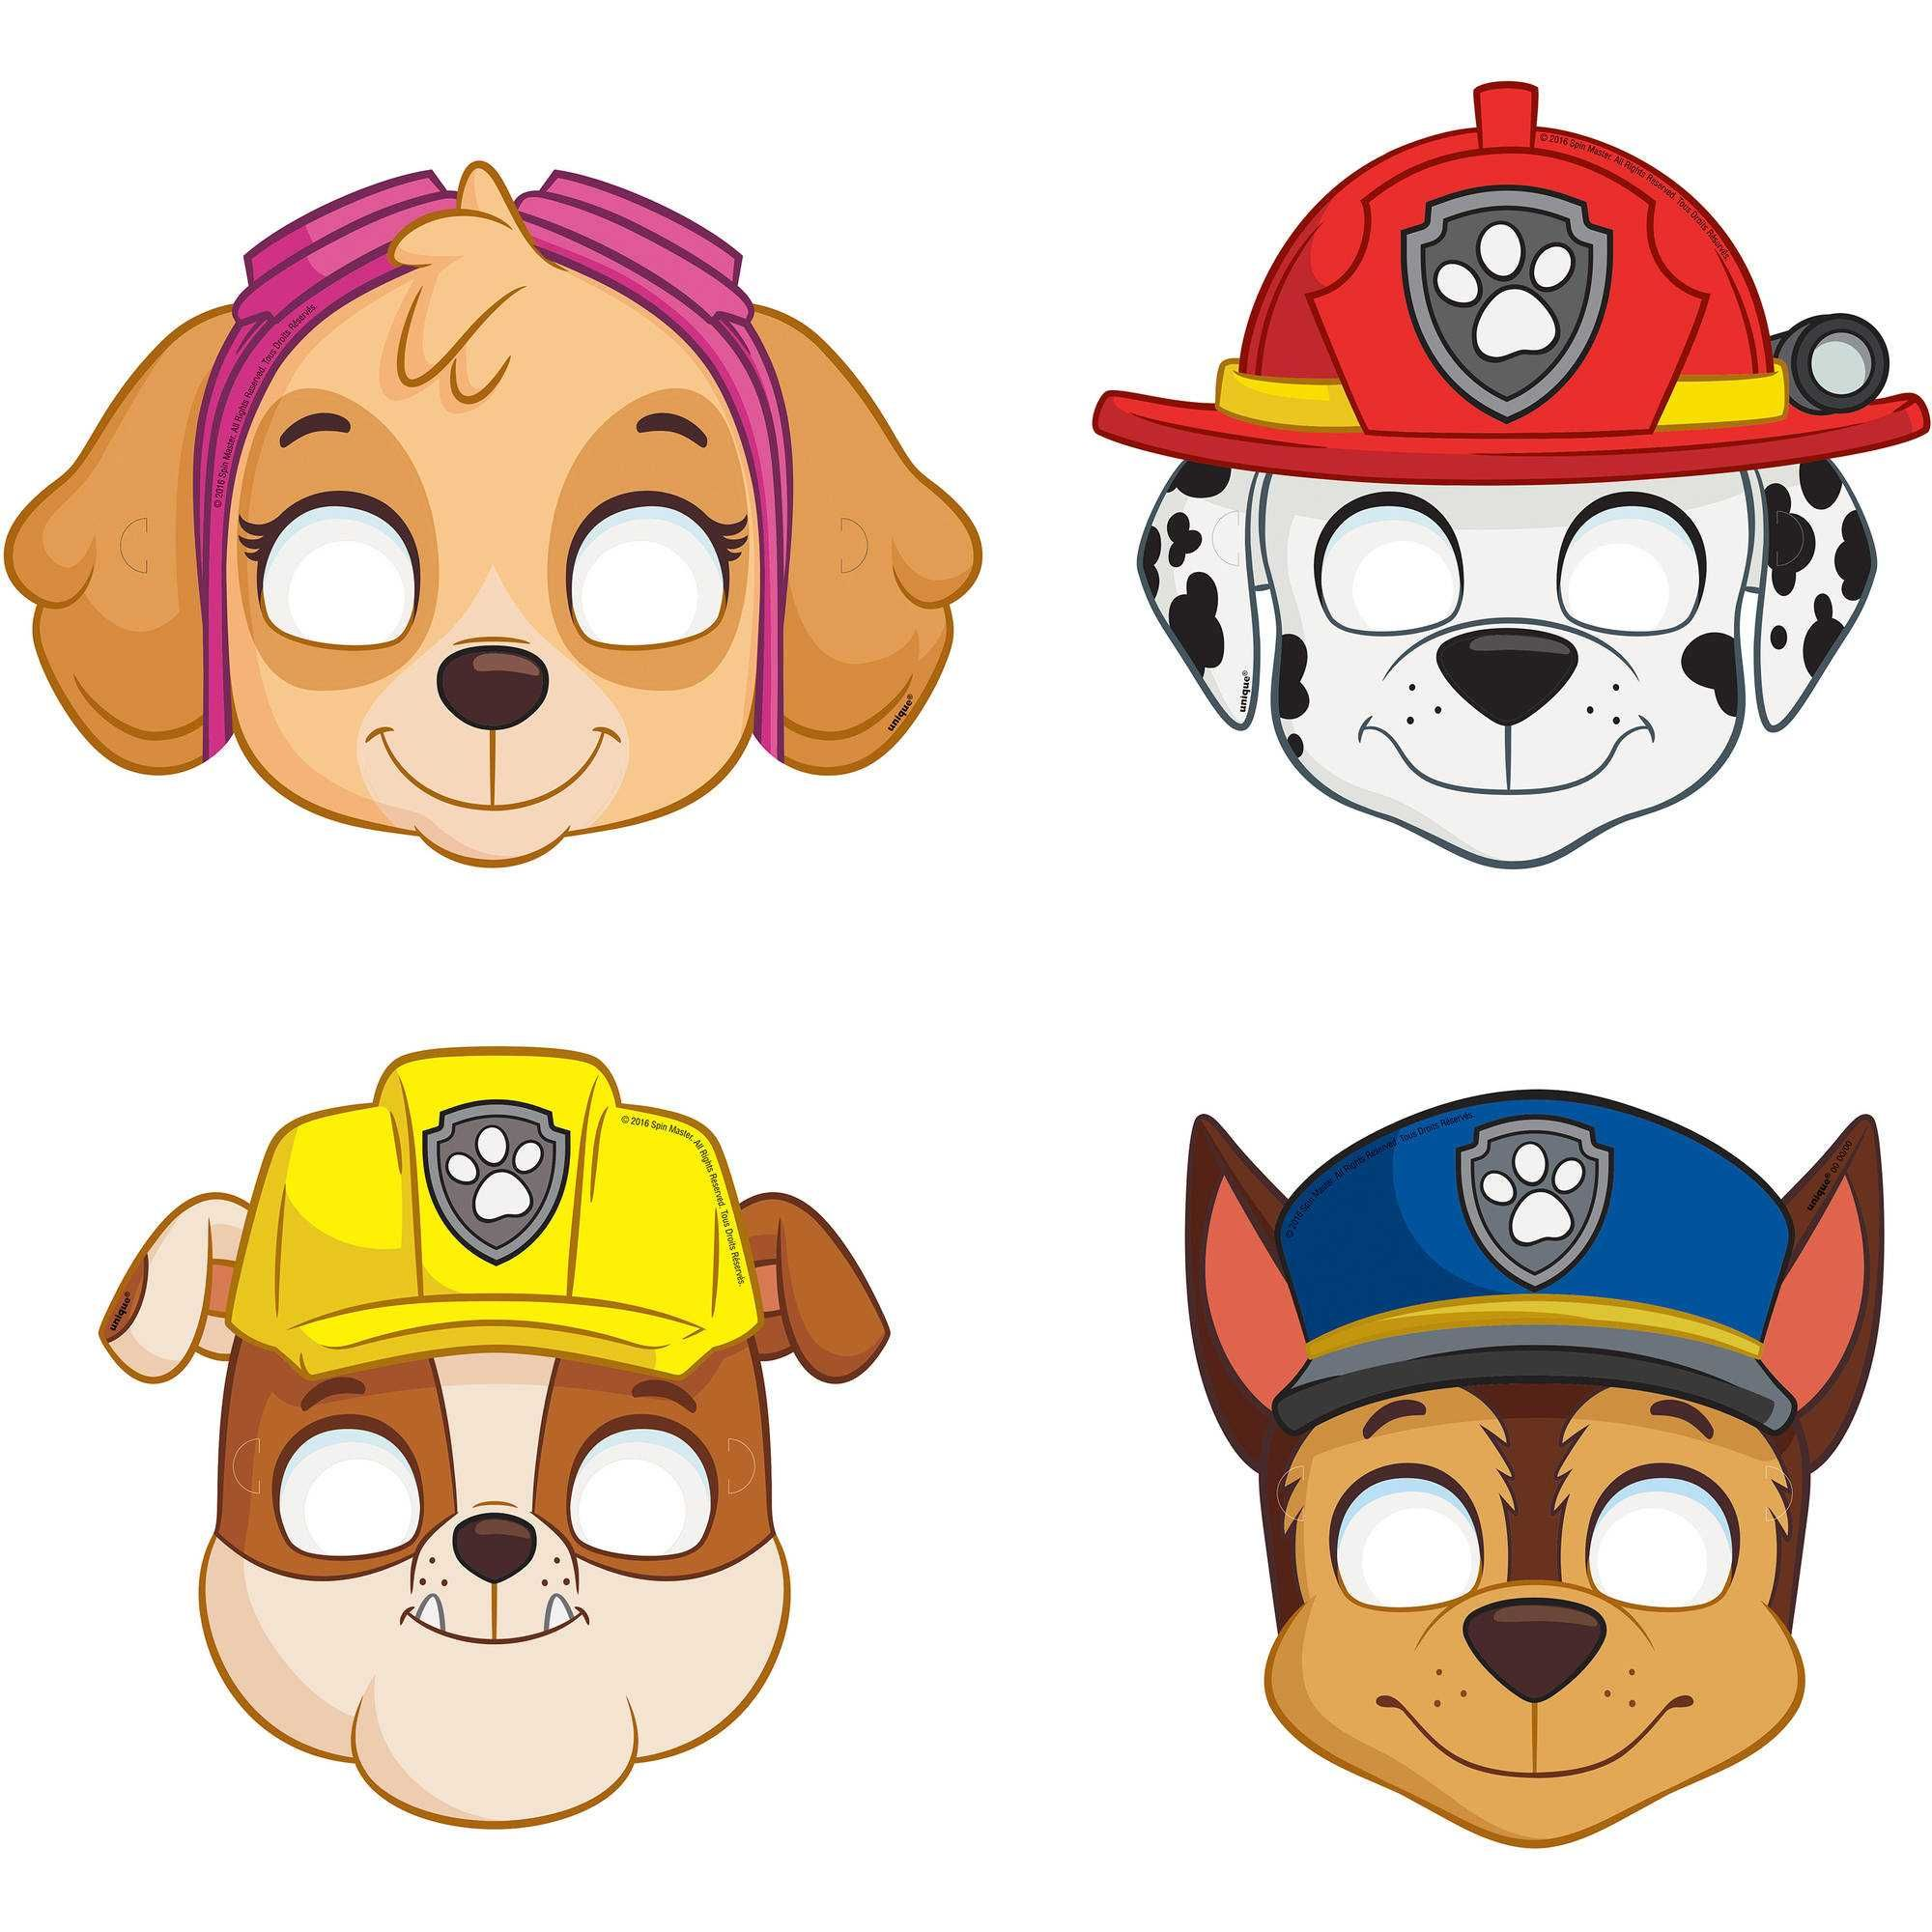 2000x2000 Images Of Paw Patrol Hd Pics Wallpaper Party Masks Assorted Count